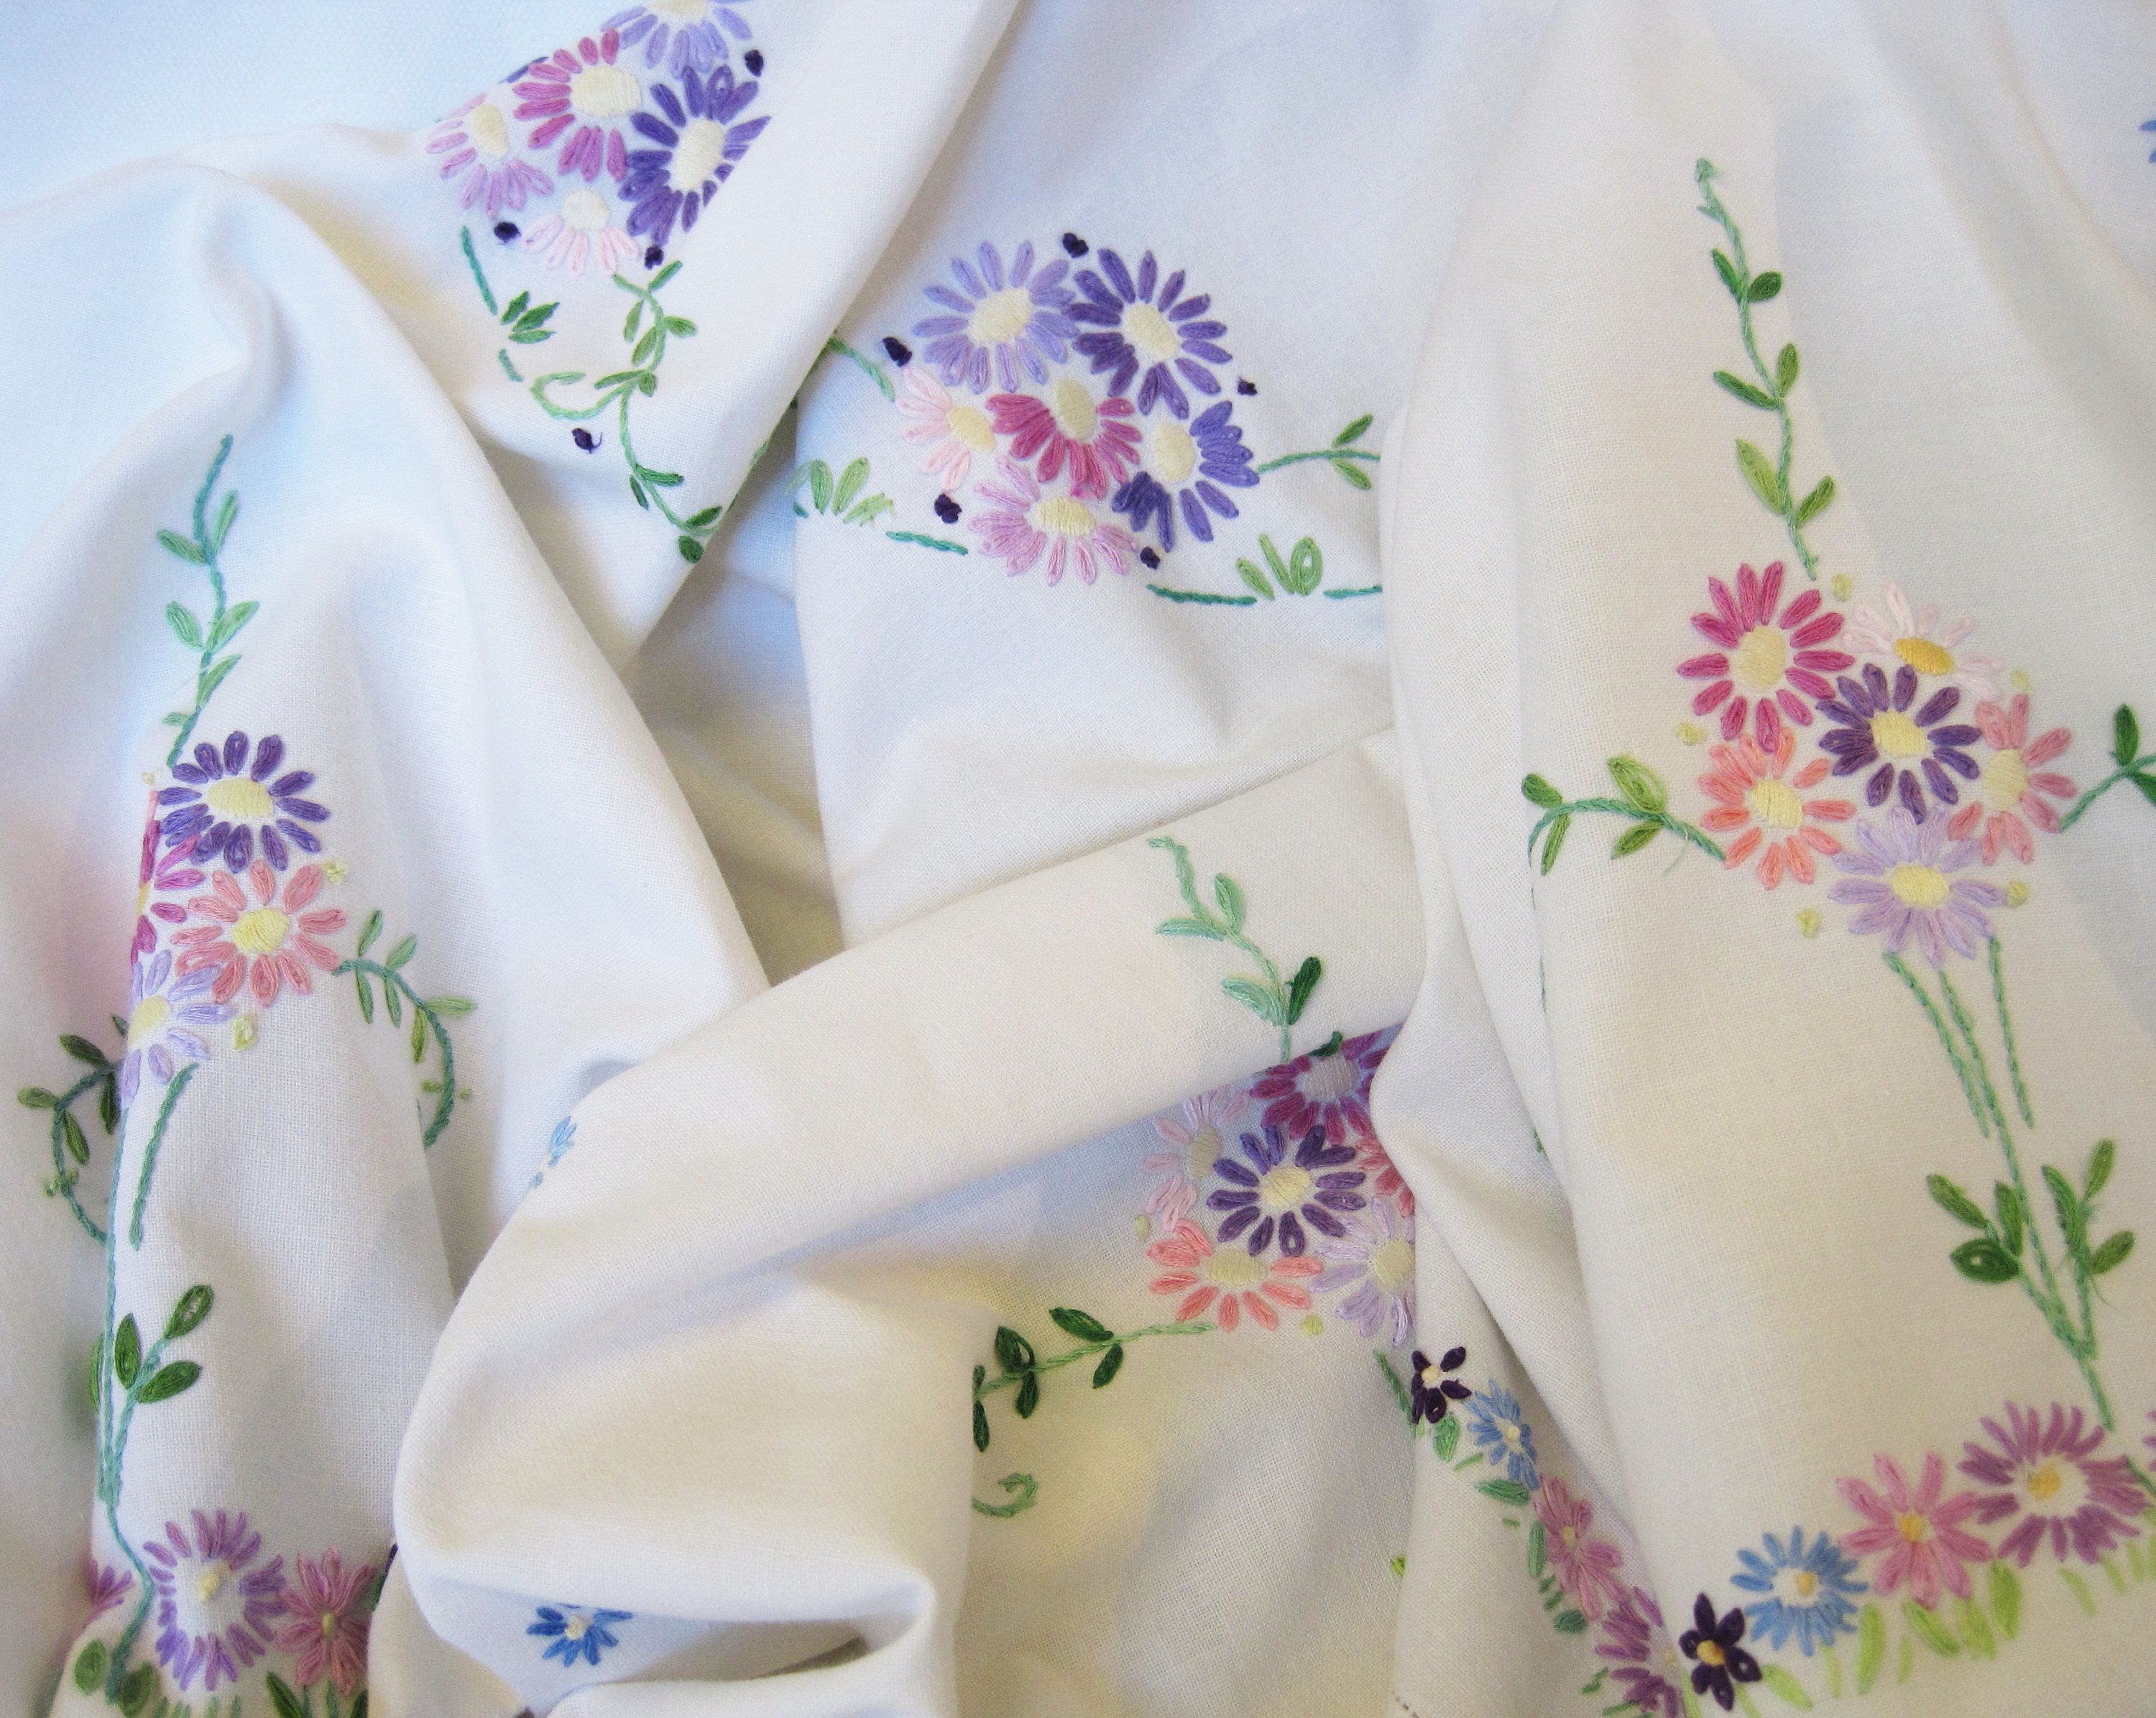 Captivating Large Hand Embroidered Daisy Tablecloth, Vintage Linen Tablecloth With Pink  And Lilac Daisies